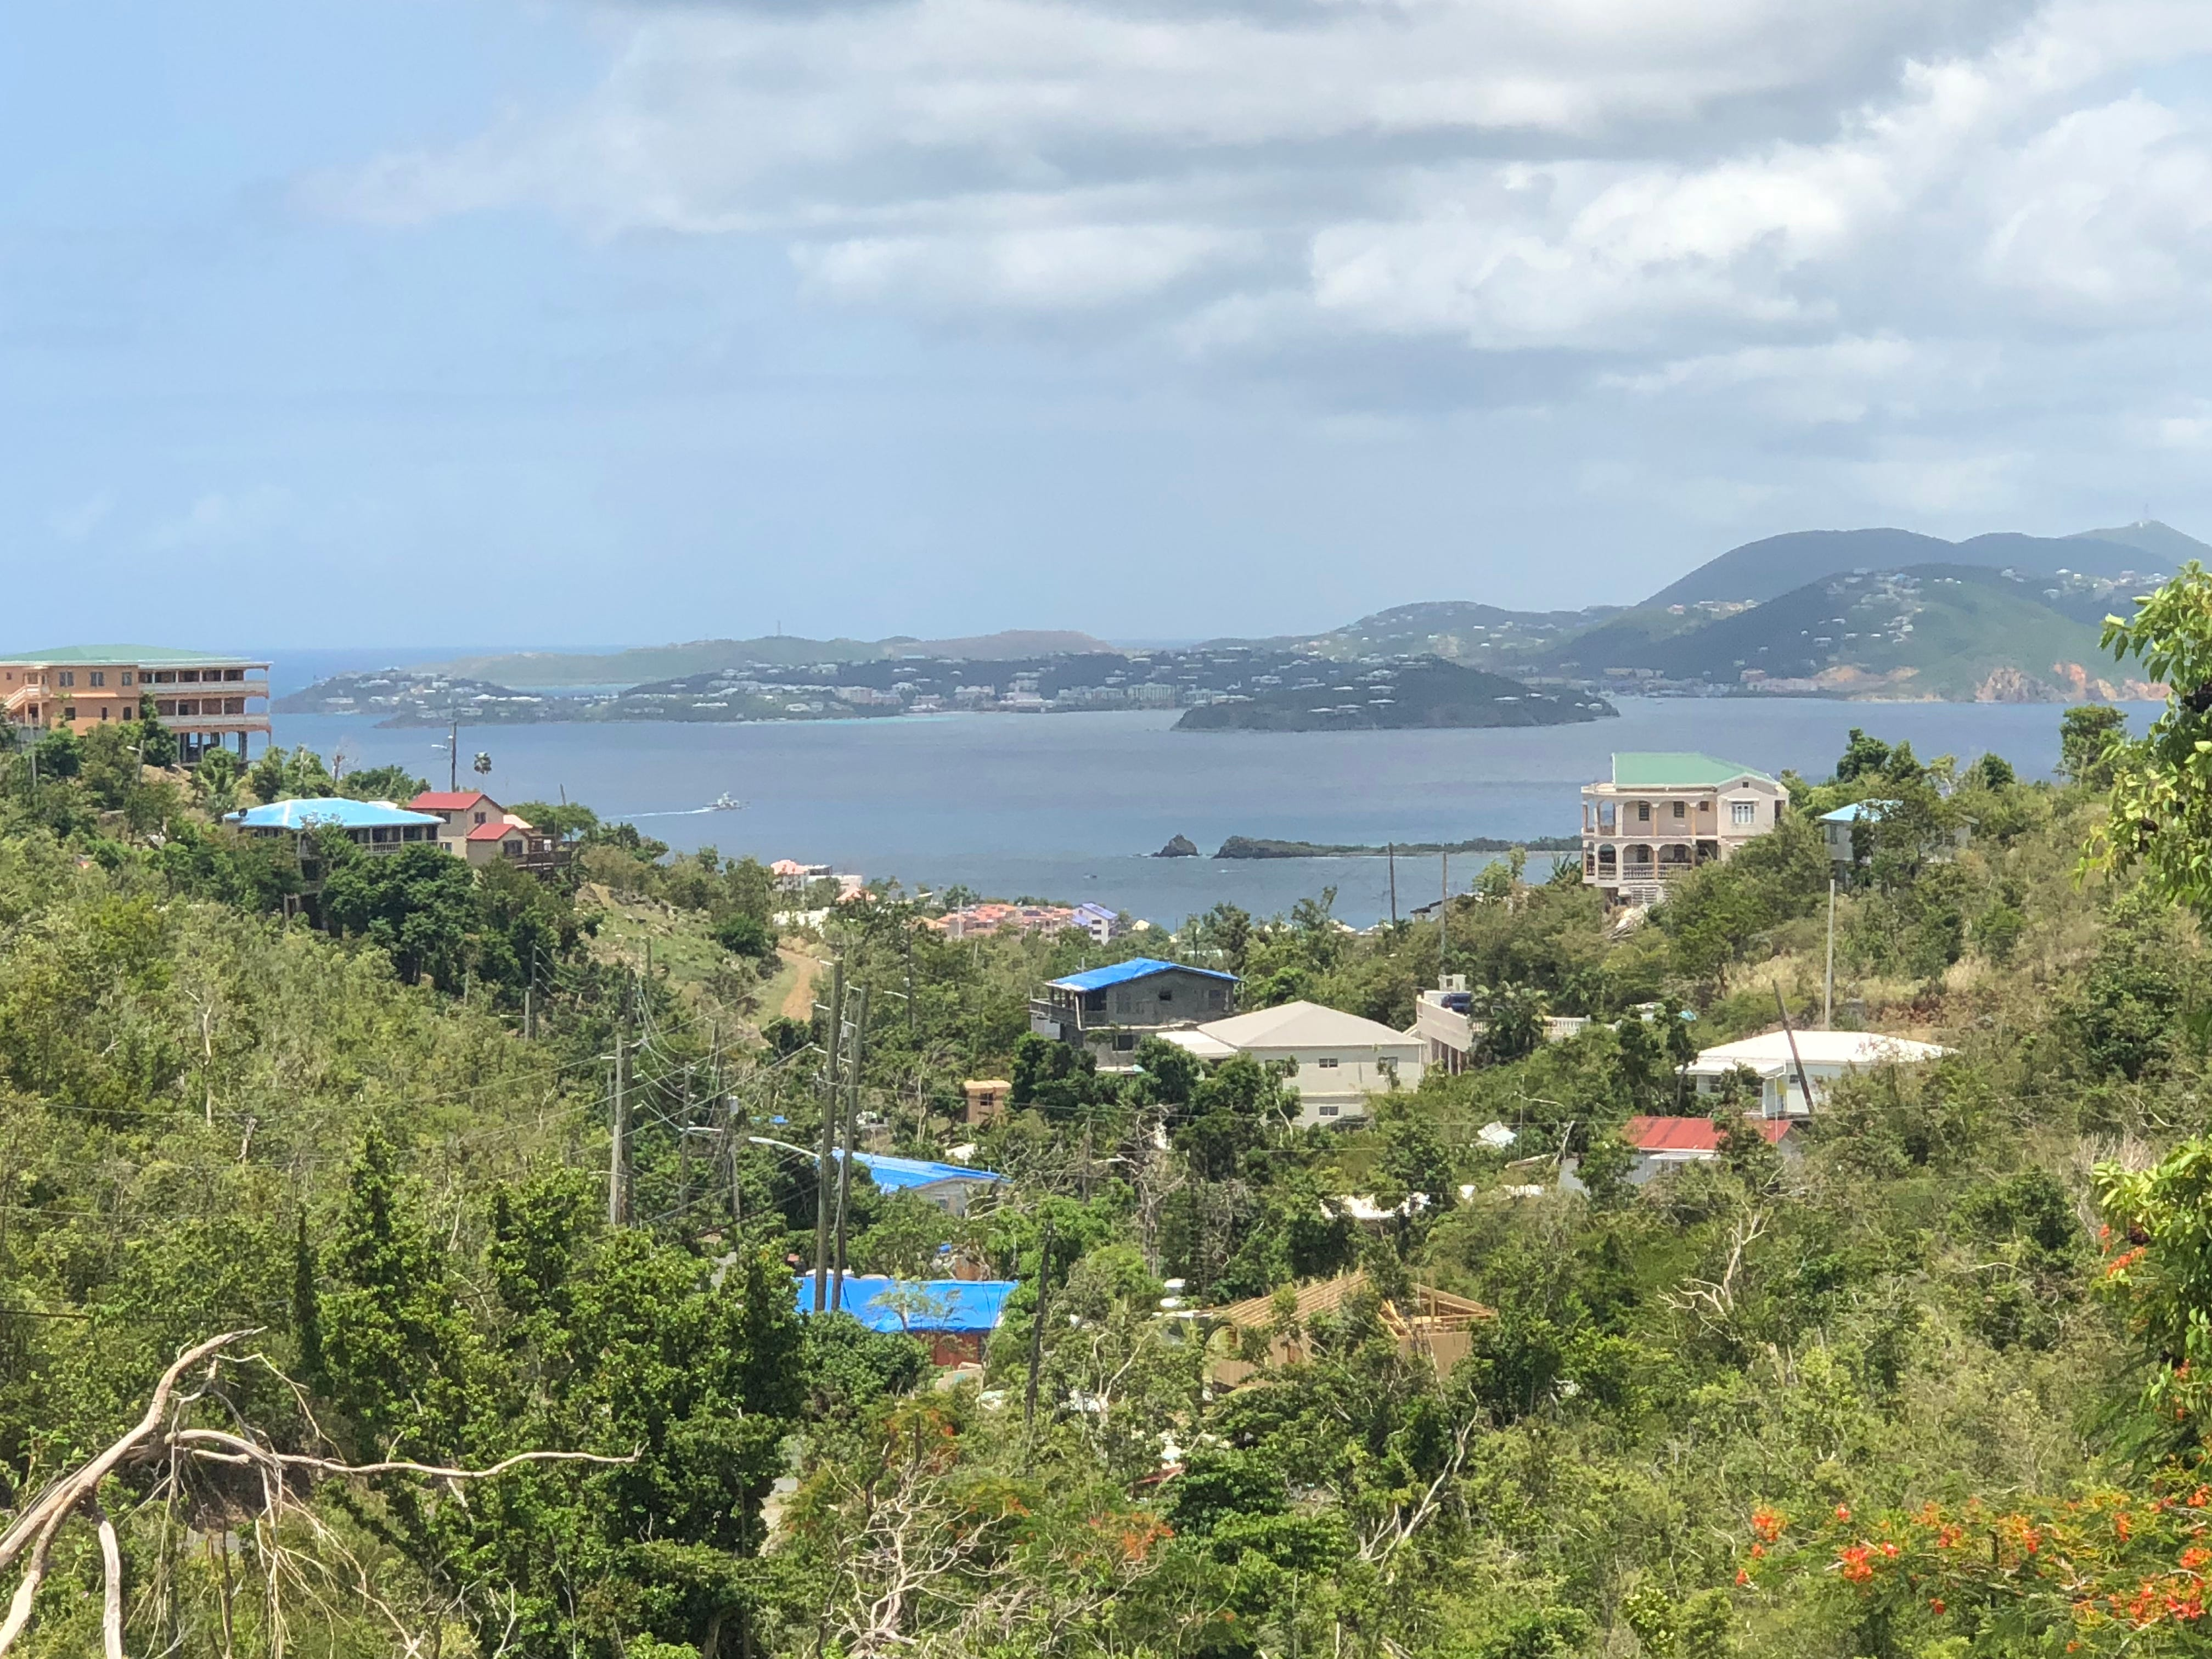 Blue tarps covering damaged or missing roofs still dot the St. John landscape, a year after Hurricane Irma battered the U.S. territorial island.